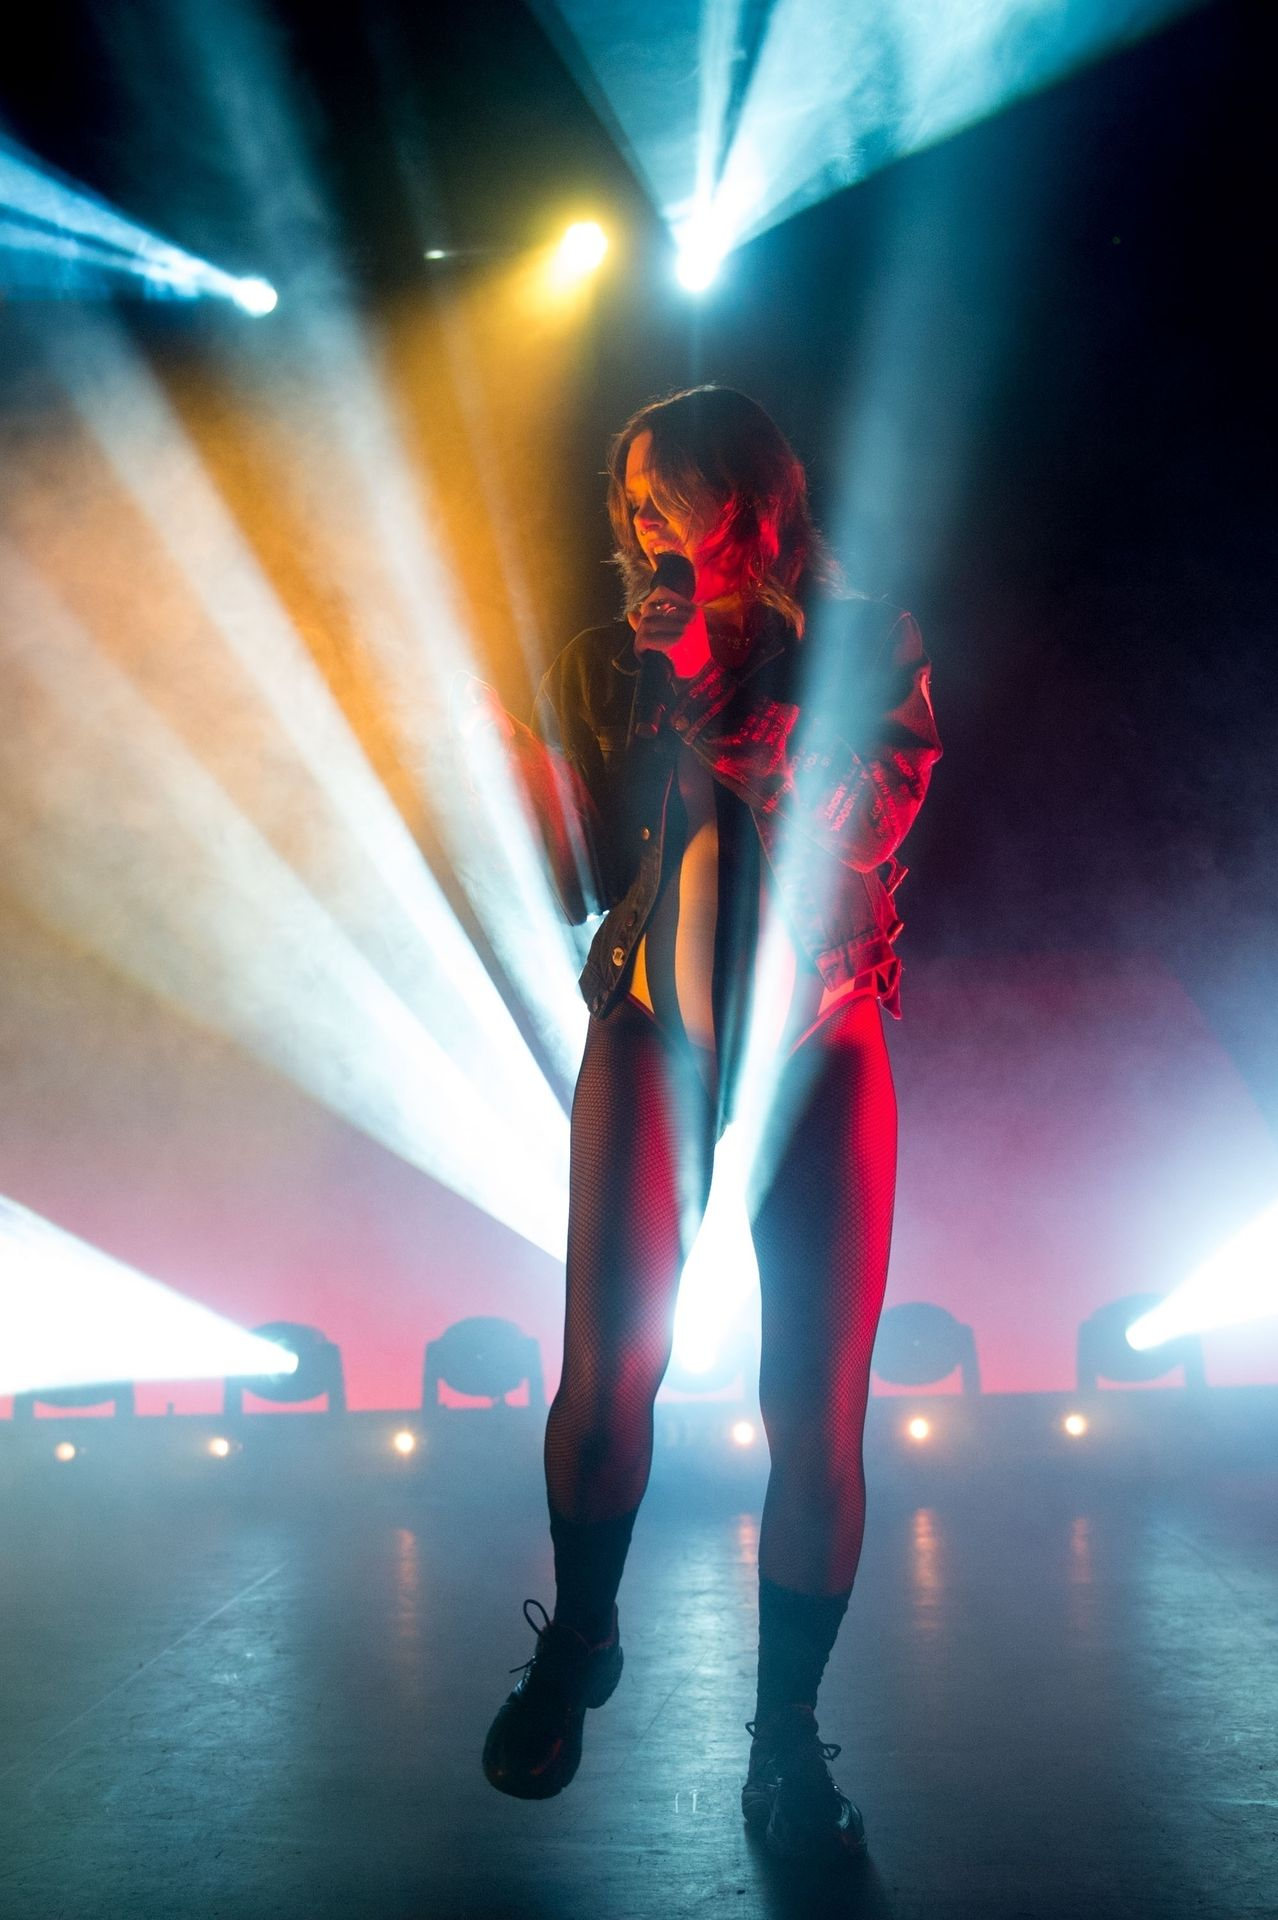 Tove Lo Is In Concert Performing Live At O2 Forum Kentish Town In London 0009